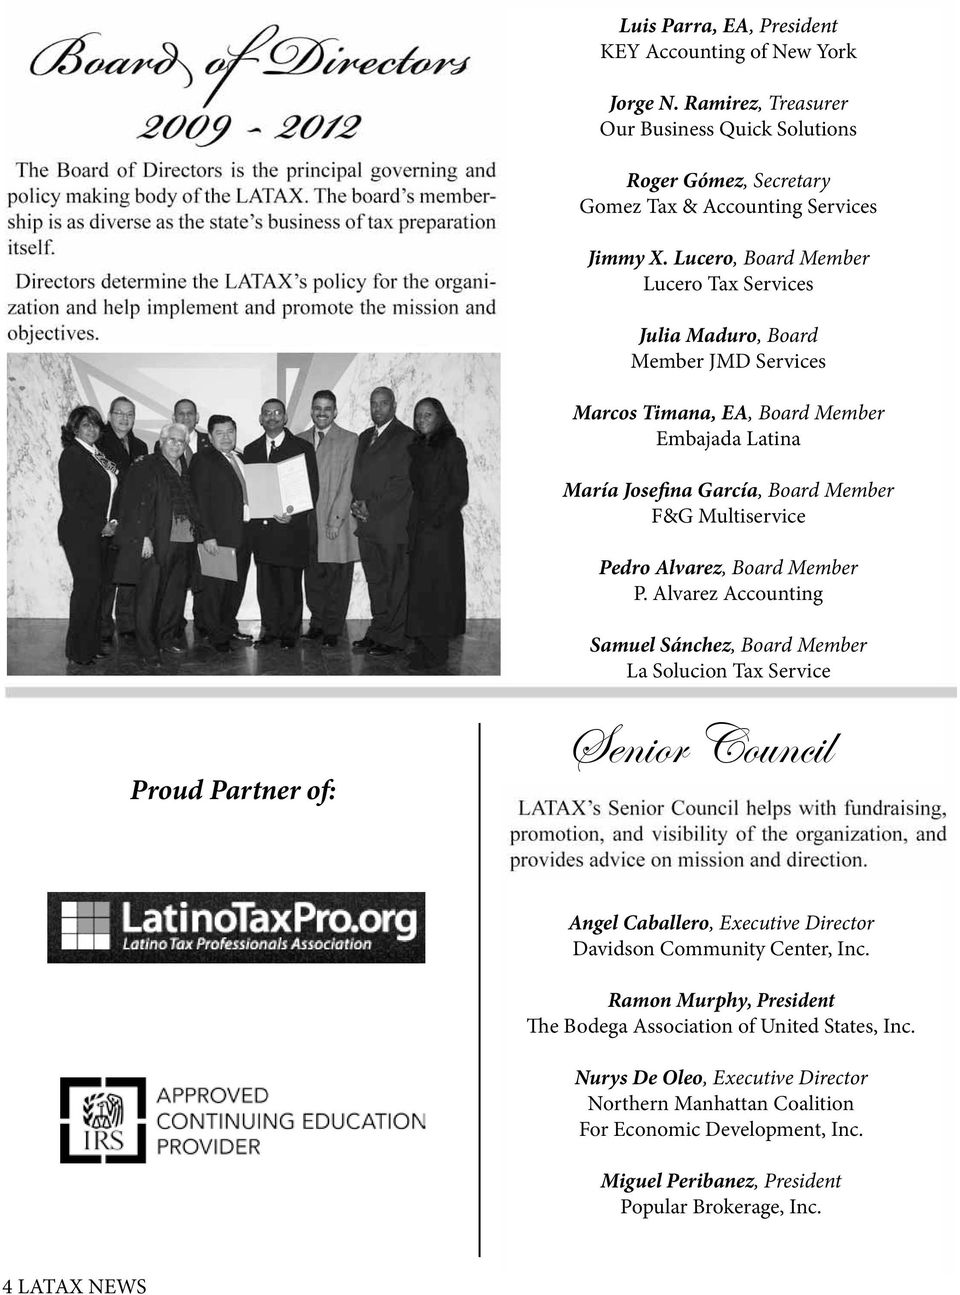 Board Member P. Alvarez Accounting Proud Partner of: Samuel Sánchez, Board Member La Solucion Tax Service Senior Council Angel Caballero, Executive Director Davidson Community Center, Inc.